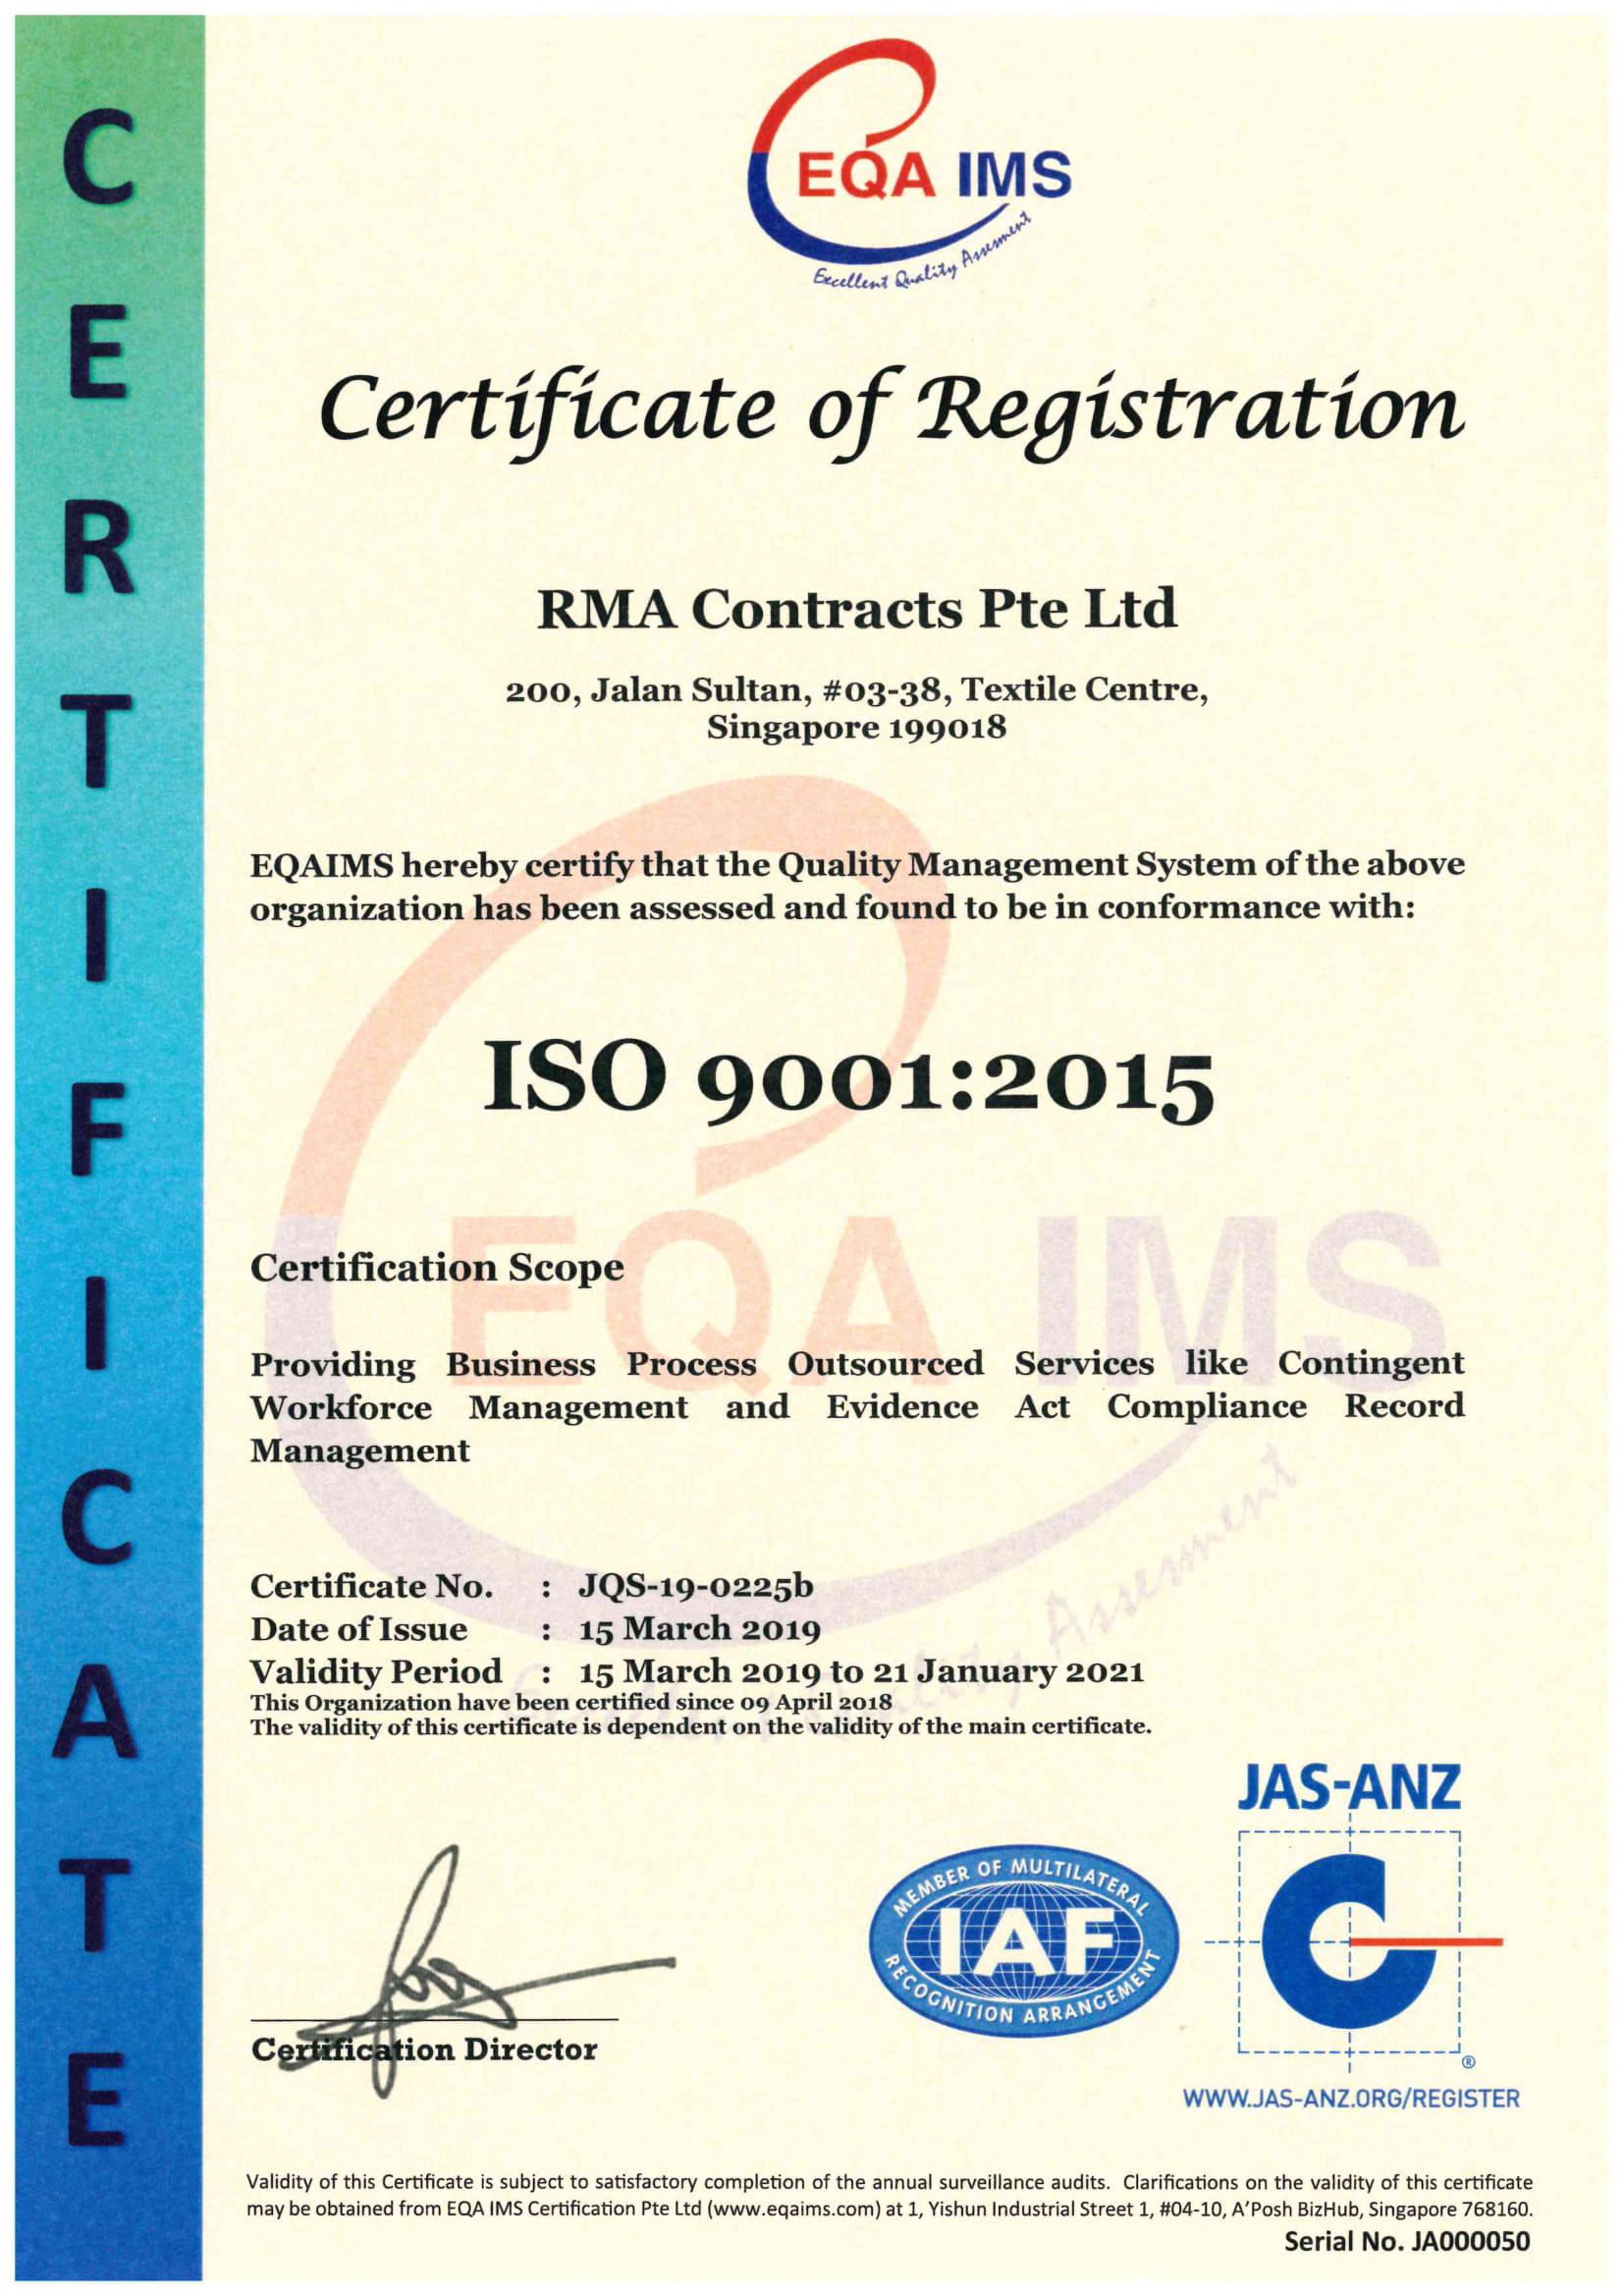 ISO 9001:2015 Certificate for Quality Management System.